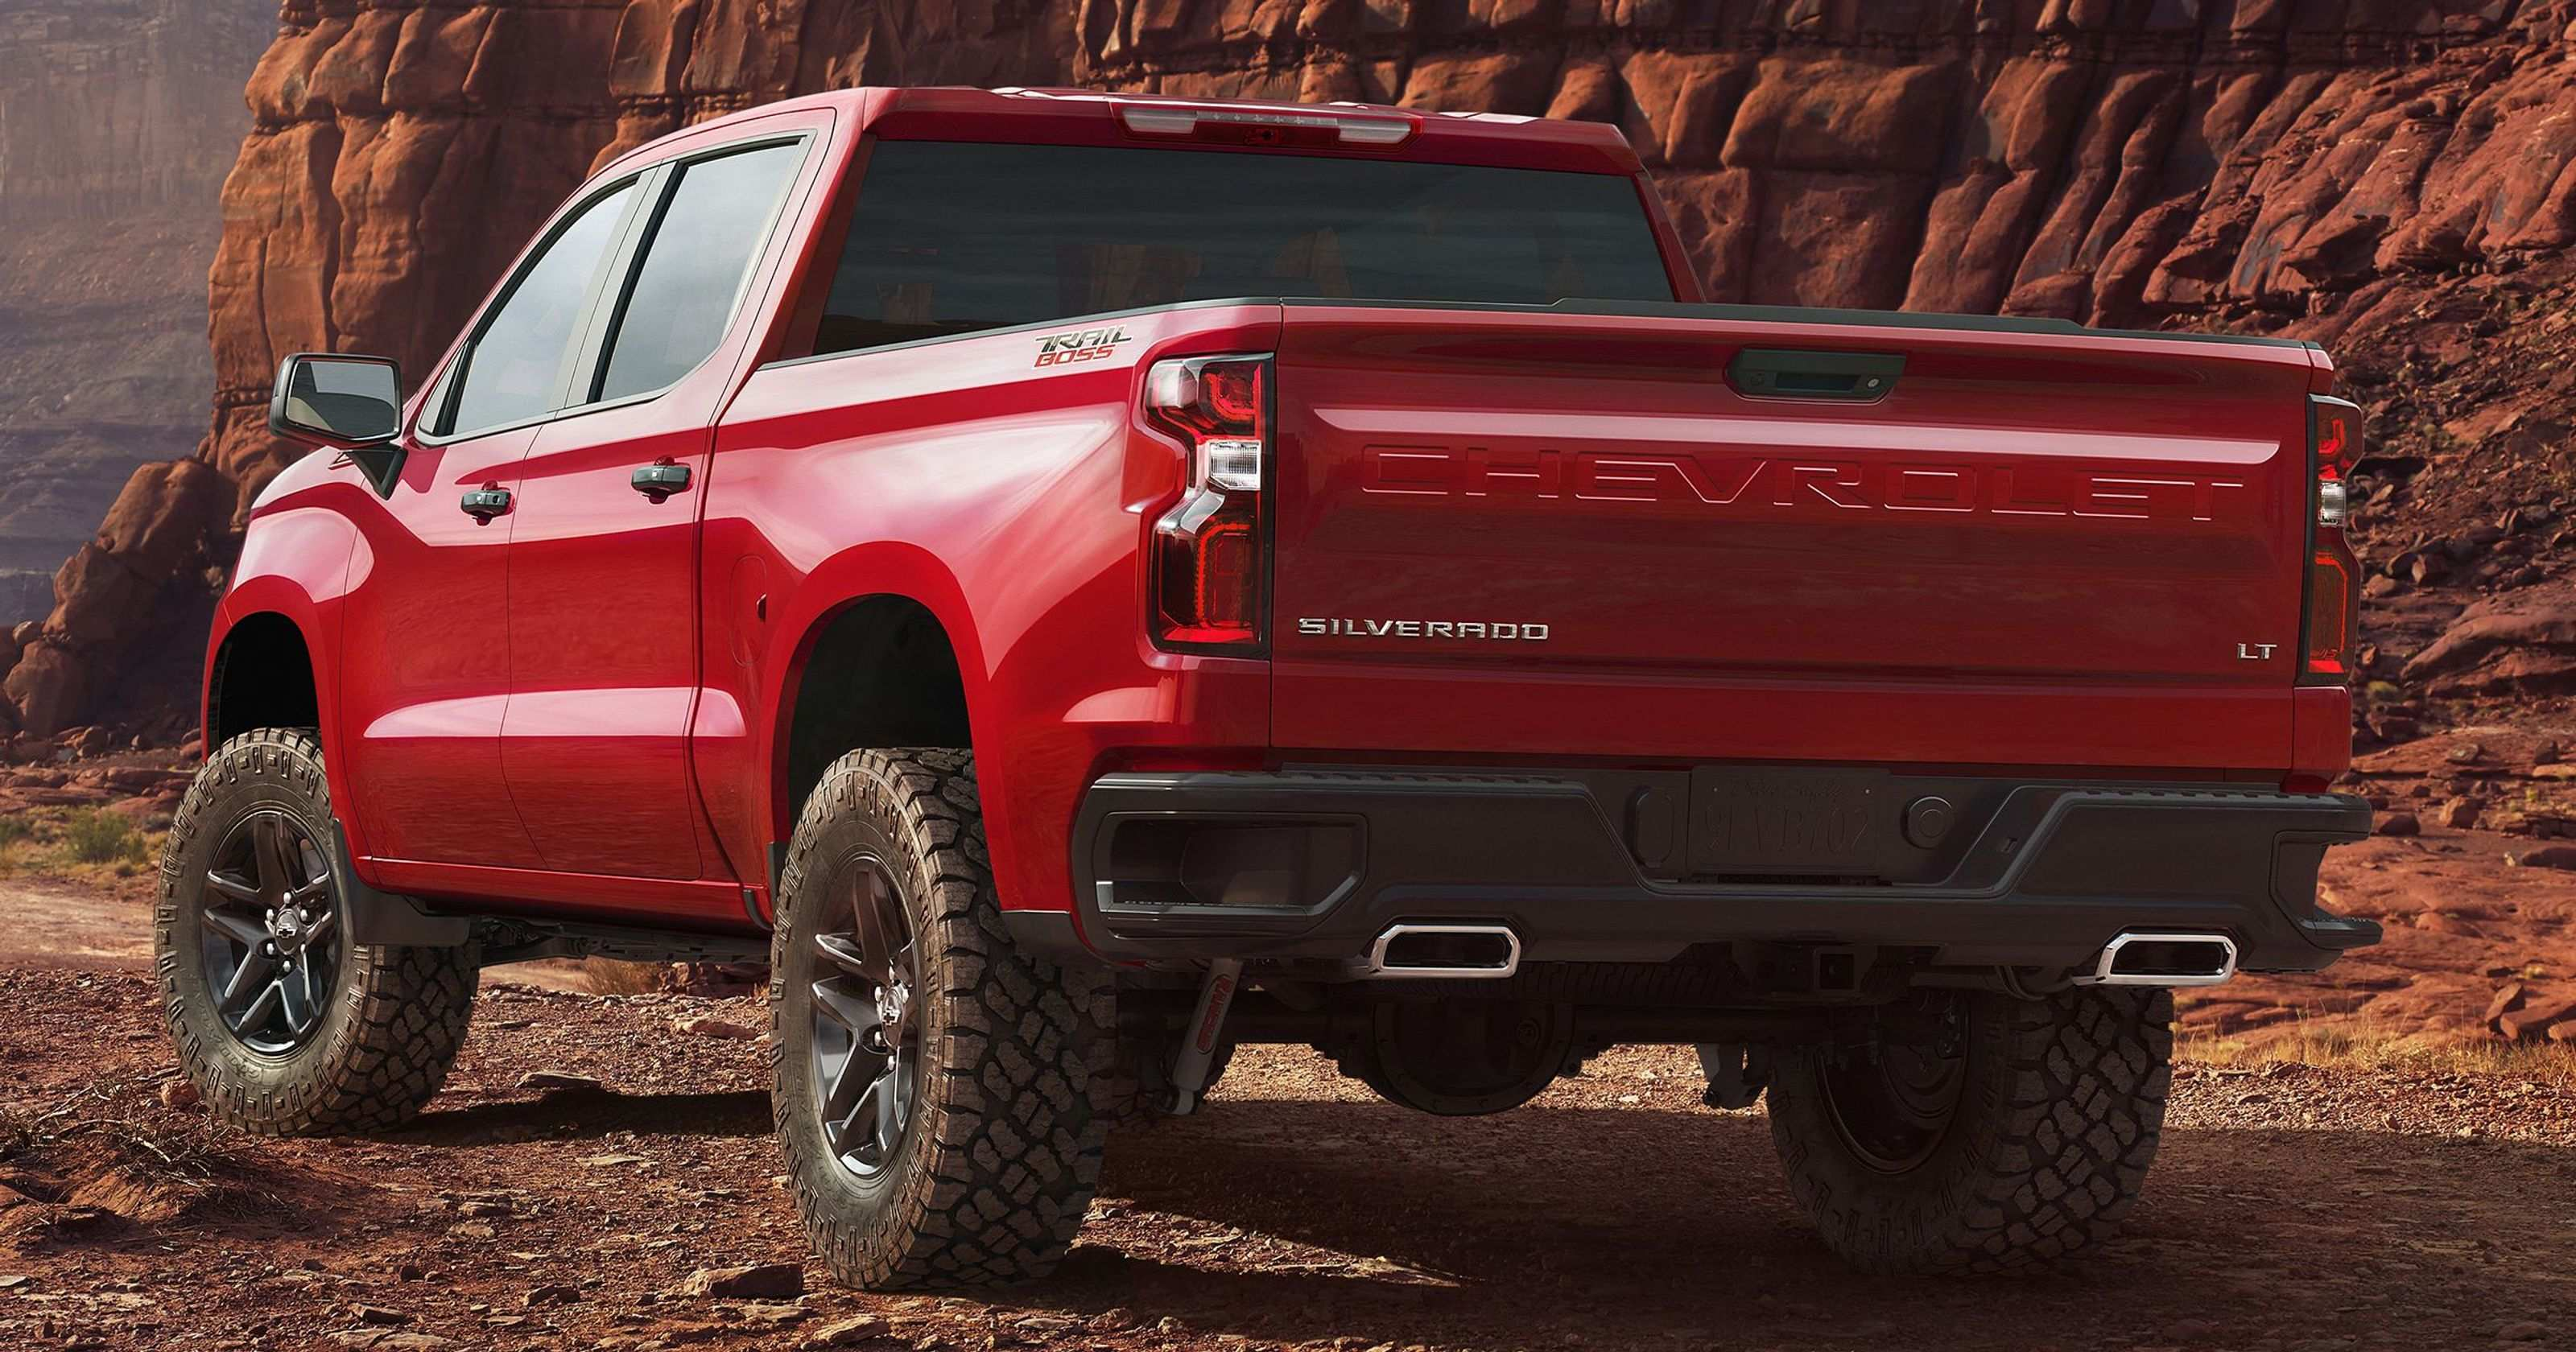 73 Gallery of 2019 Chevrolet Silverado Aluminum Reviews with 2019 Chevrolet Silverado Aluminum